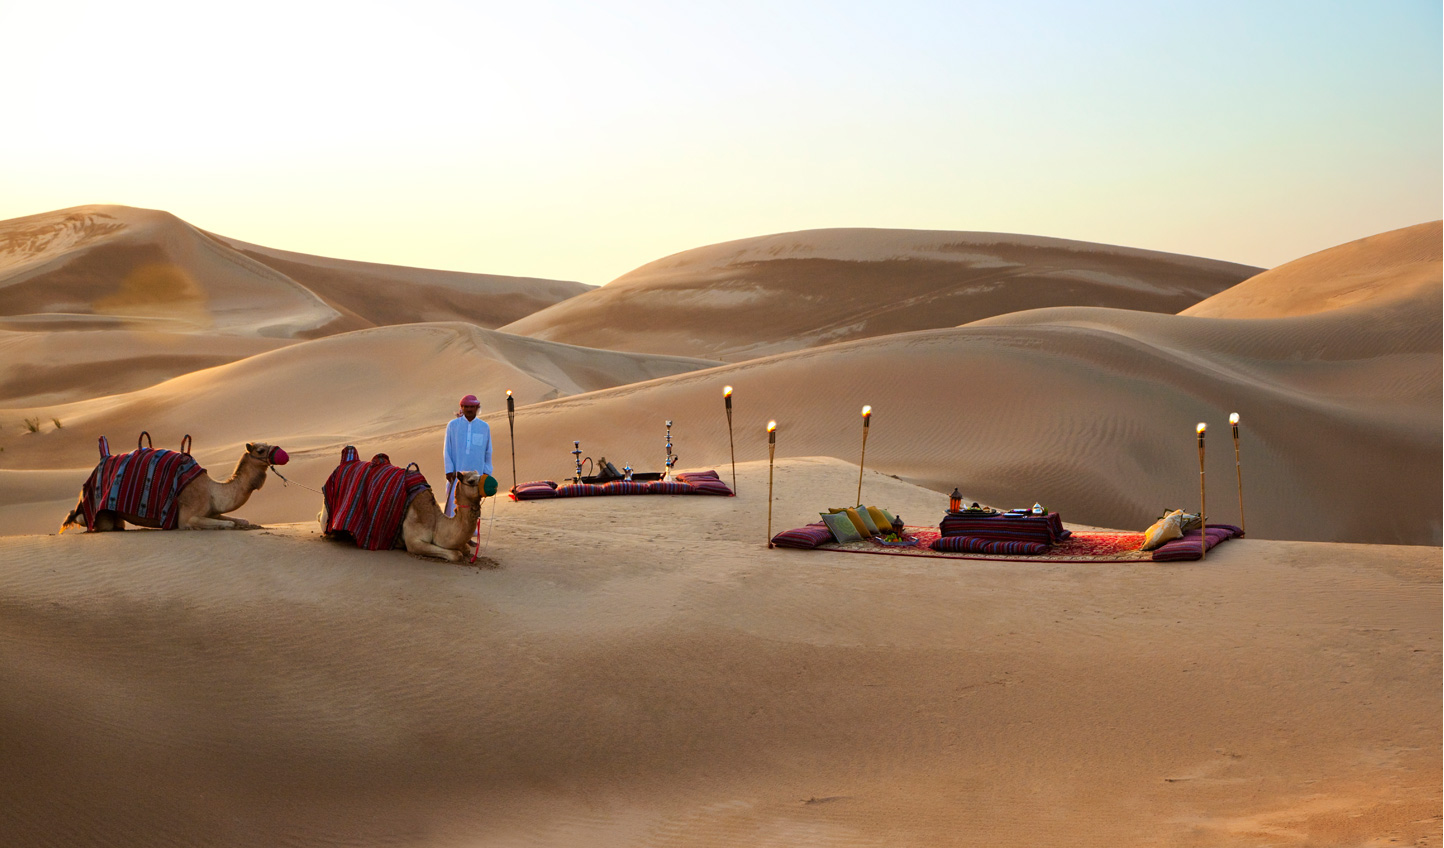 The United Arab Emirates is a unique luxury destination where desert meets city. Experience it with Rosewood's A Sense of Taste